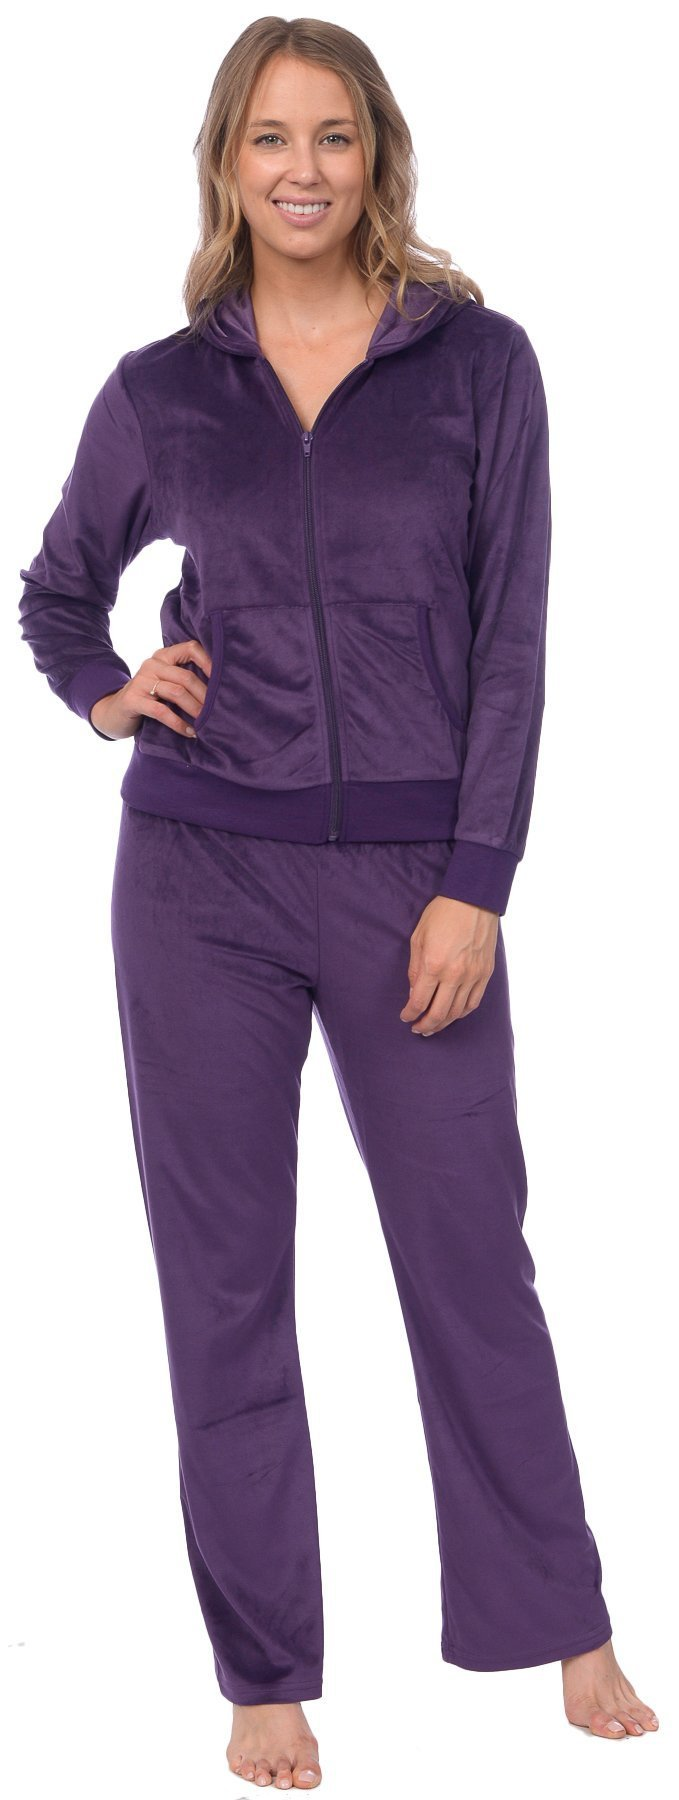 Pink Lady Womens Soft Velour Zip Hoodie and Bottoms Lounge Tracksuit (Crown Jewel, M)